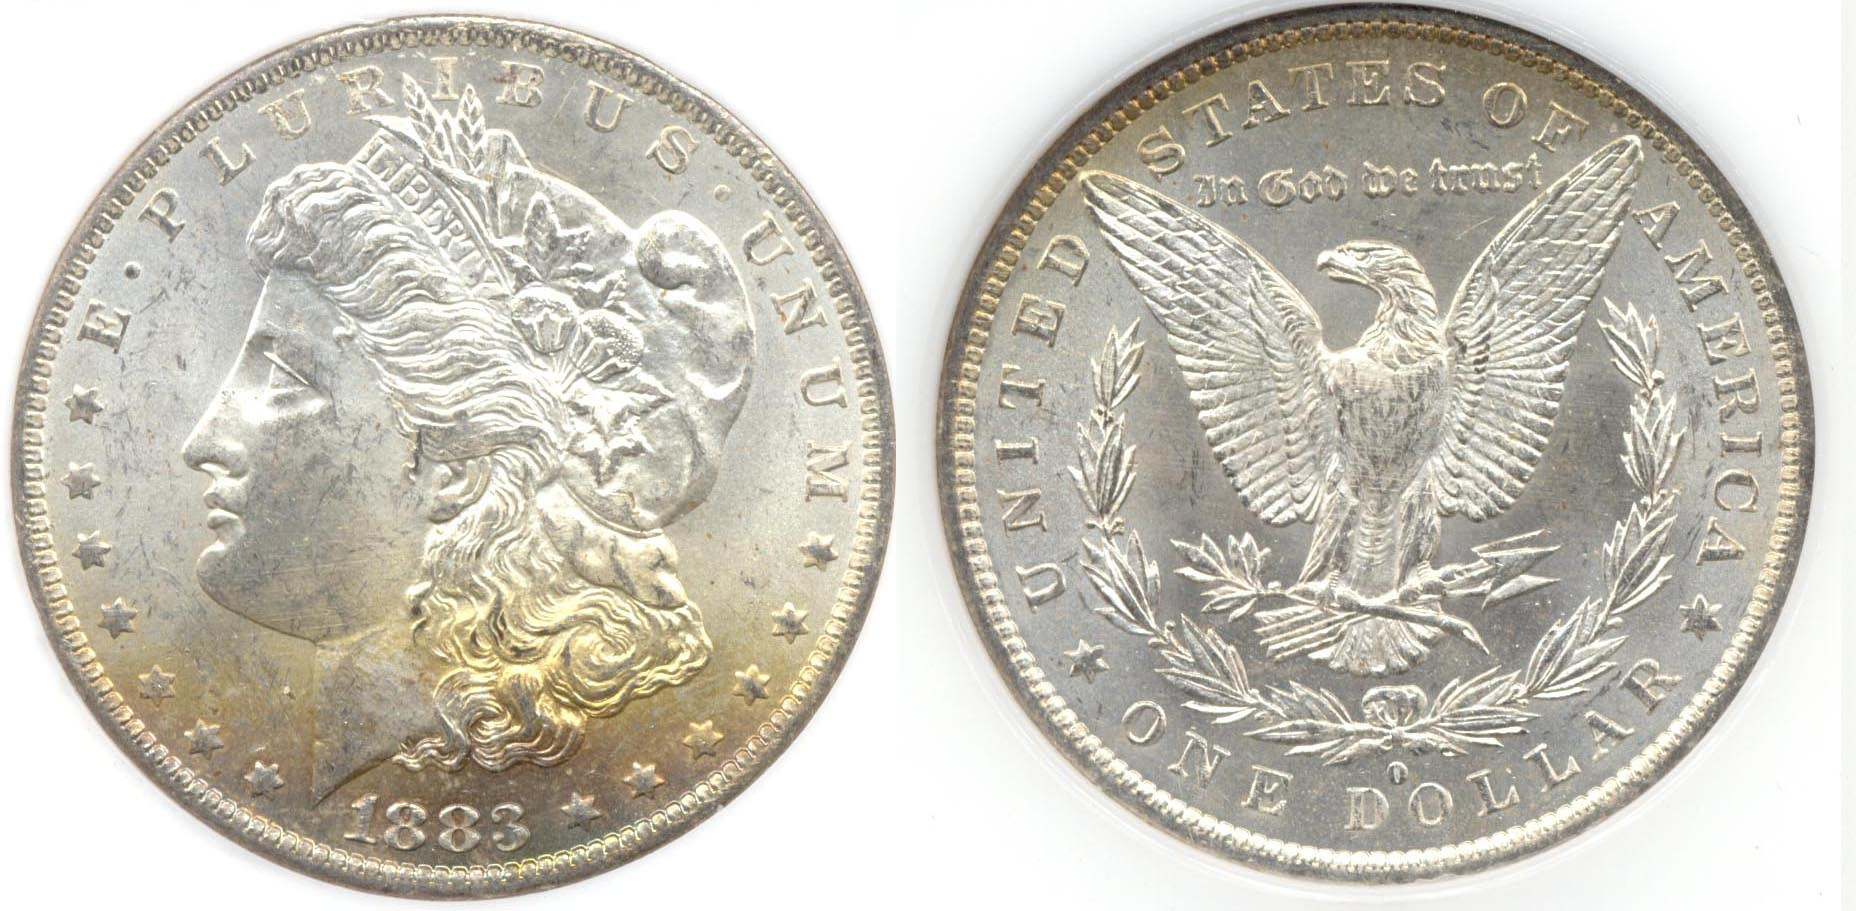 1883-O Morgan Silver Dollar PCI MS-64 i